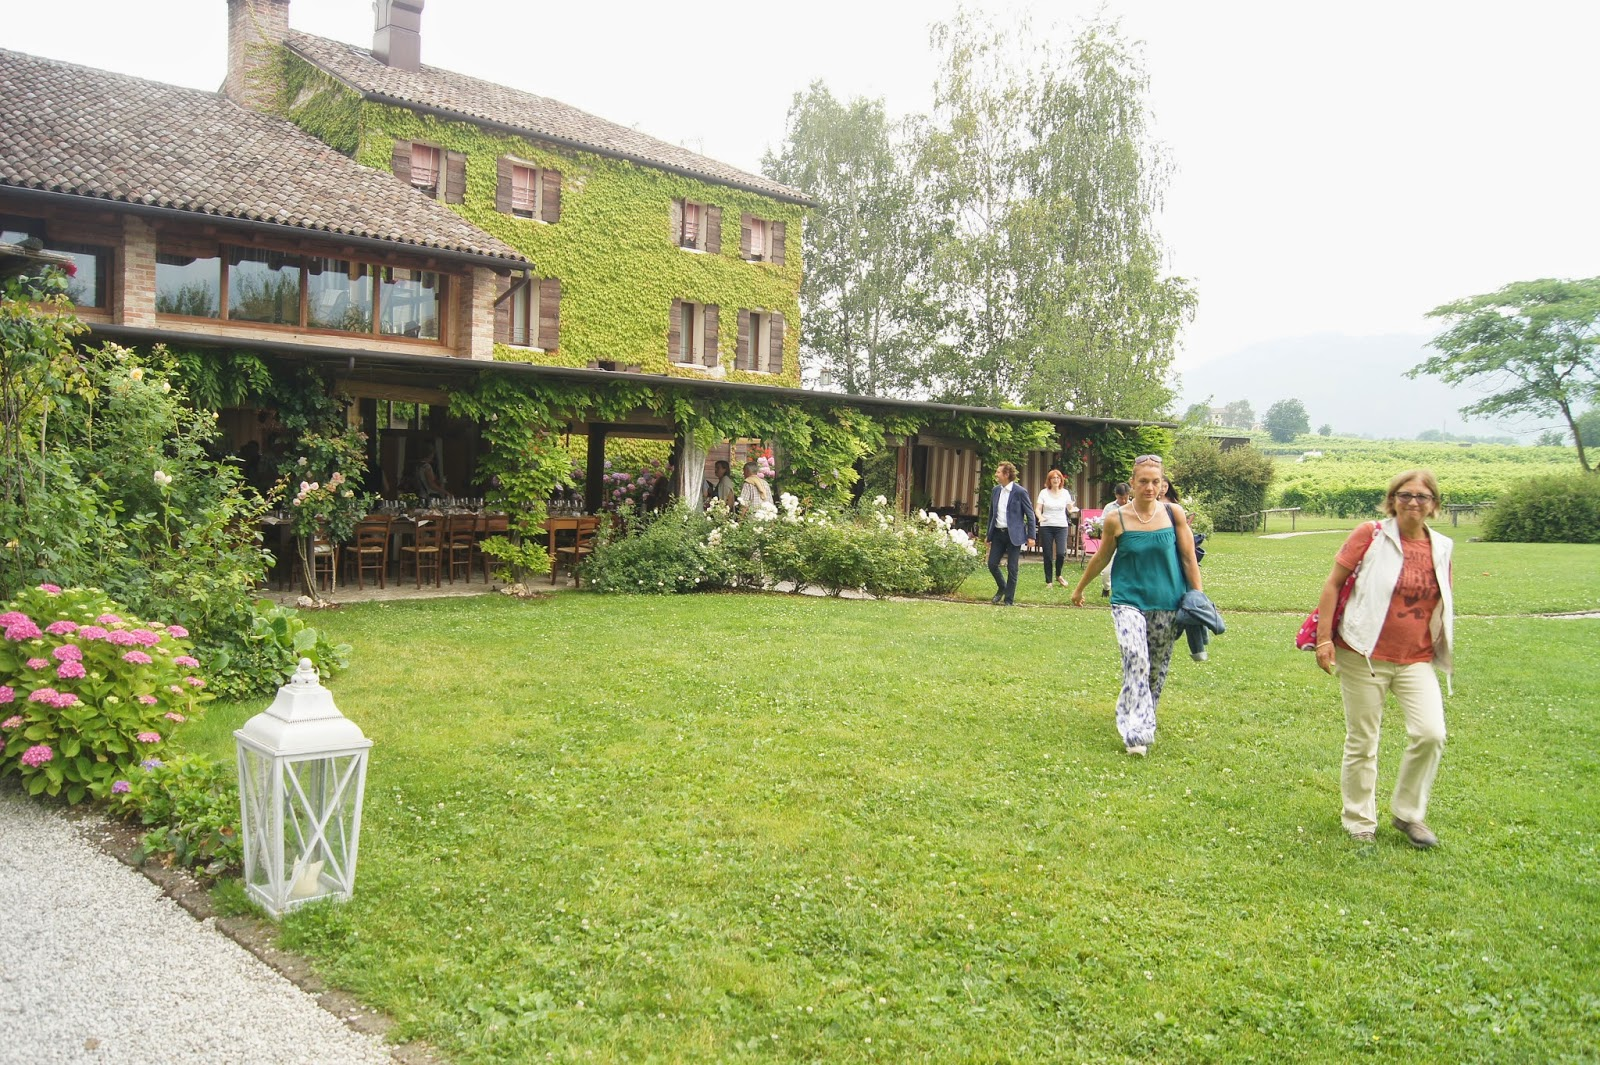 Tenuta Contessa Relais Country House dwightthewinedoctor